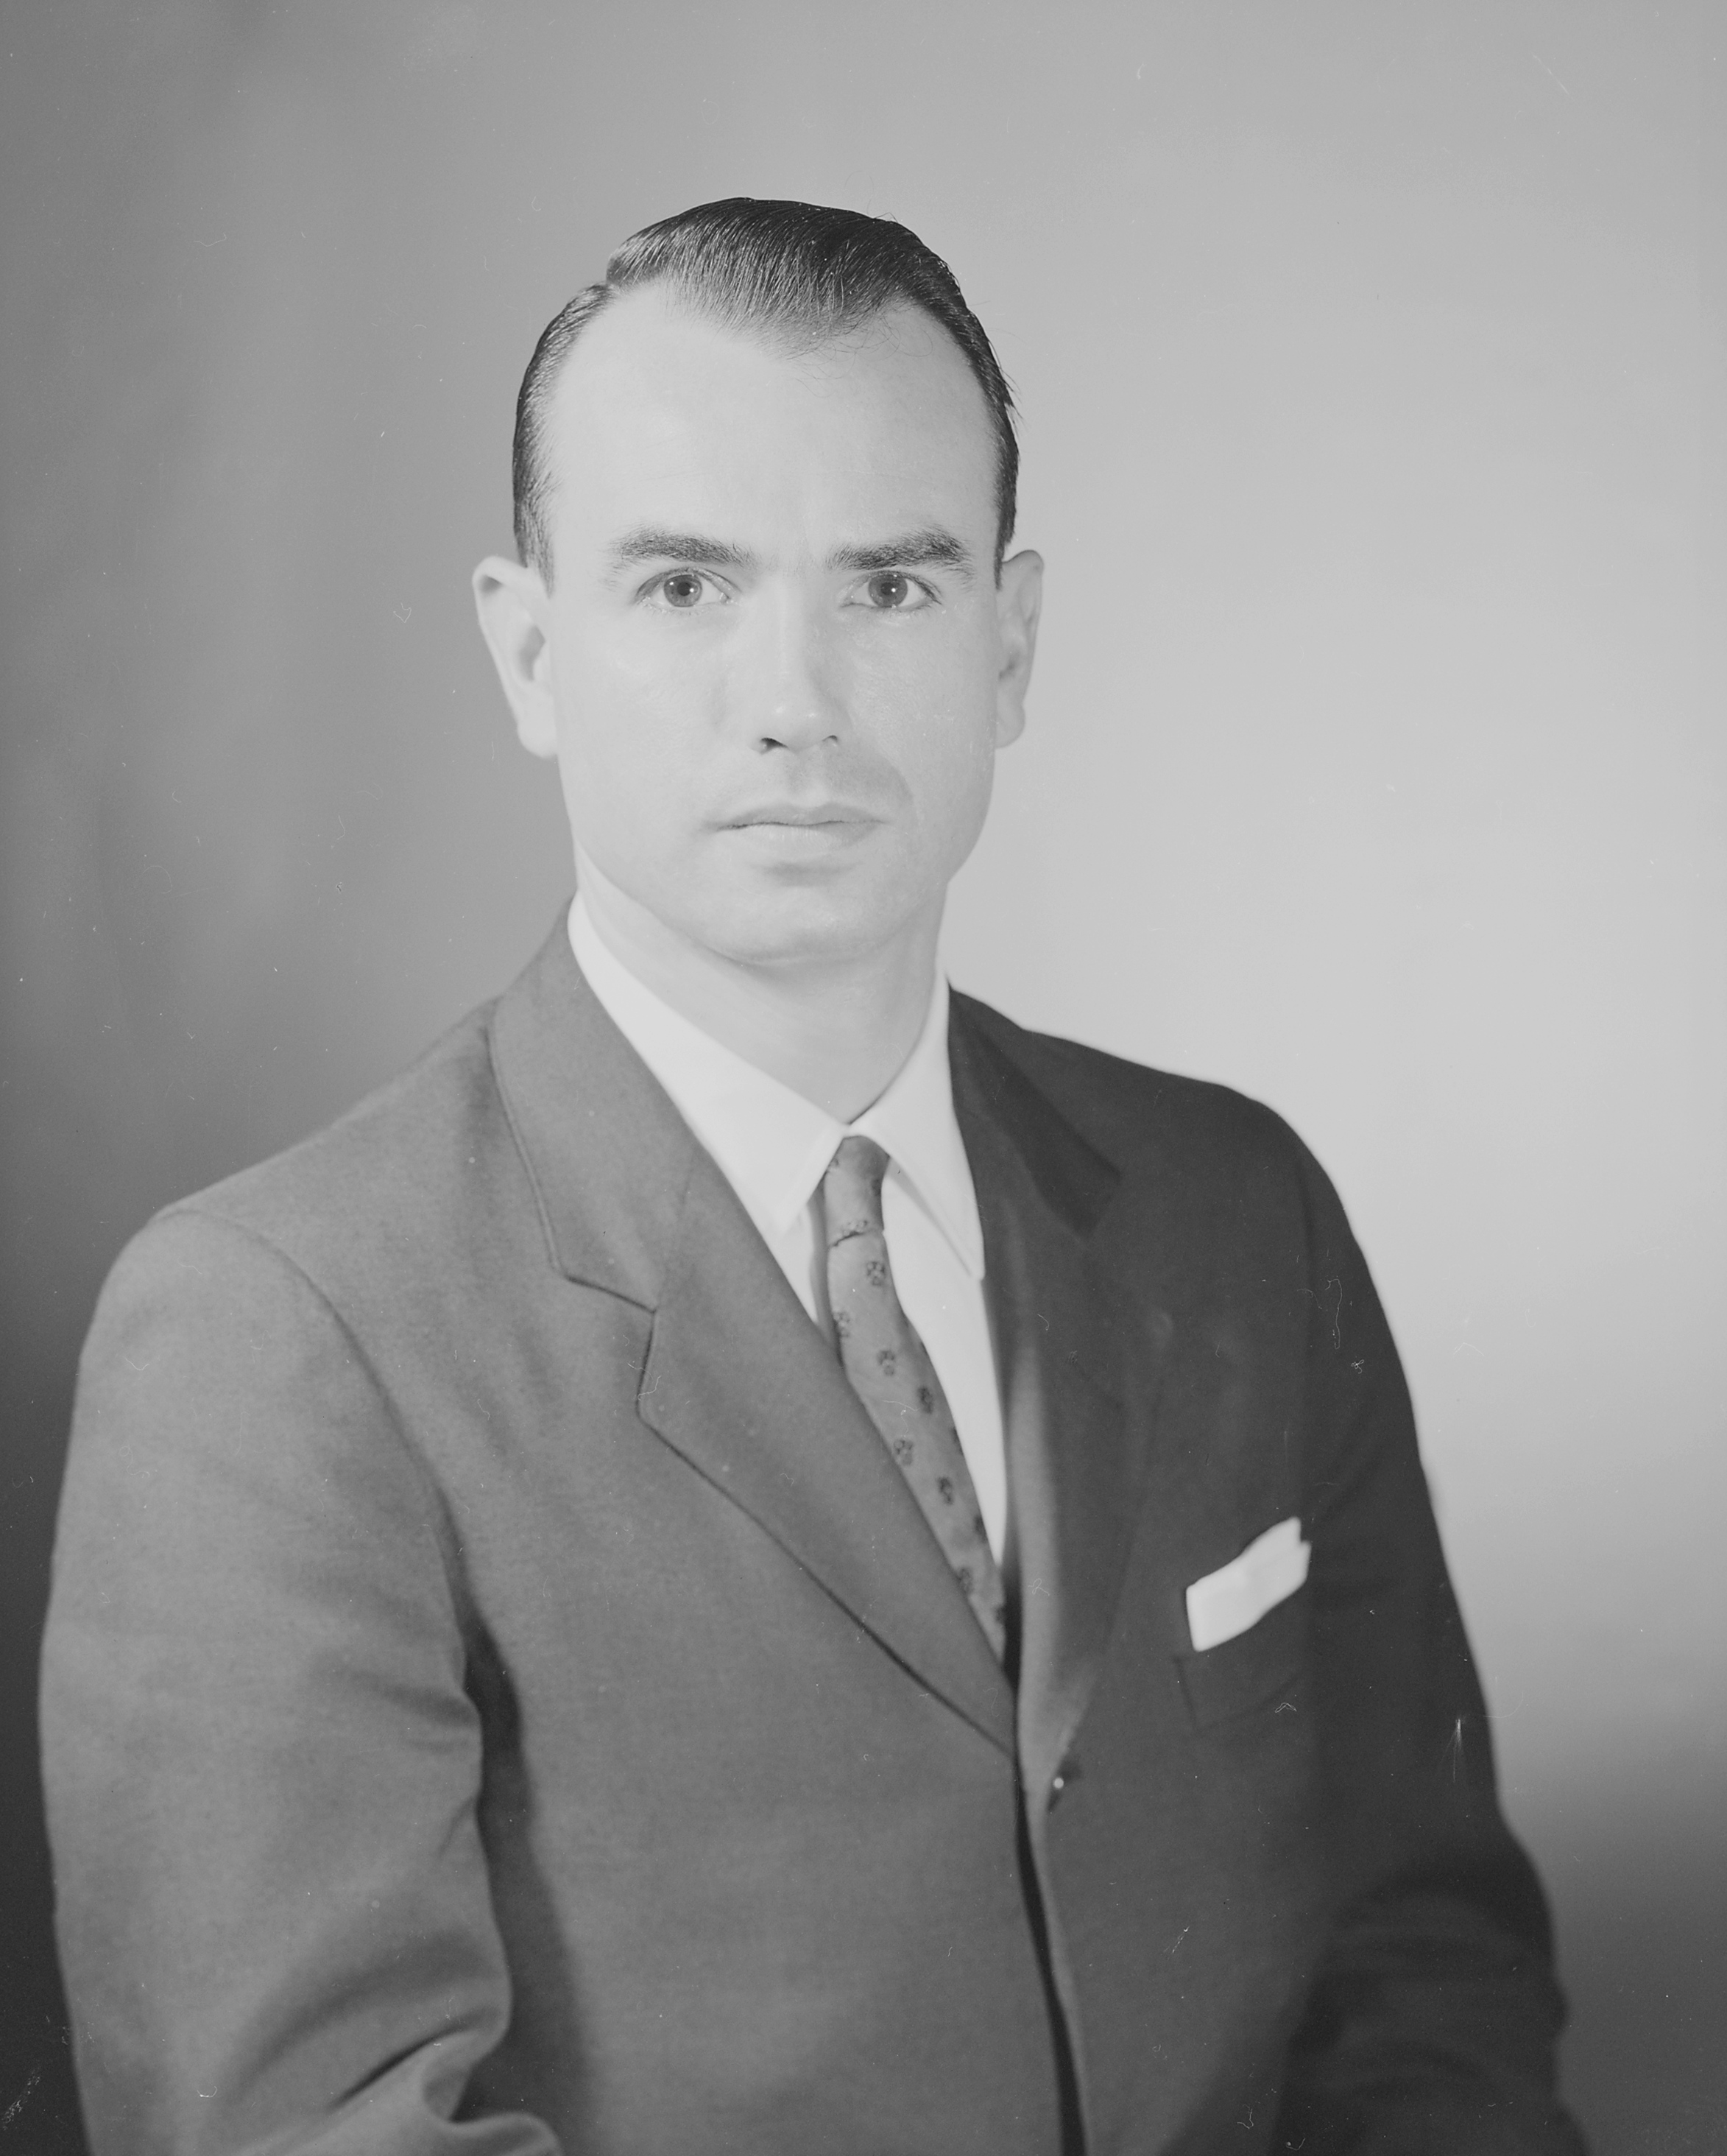 G._Gordon_Liddy_c_1964.jpg